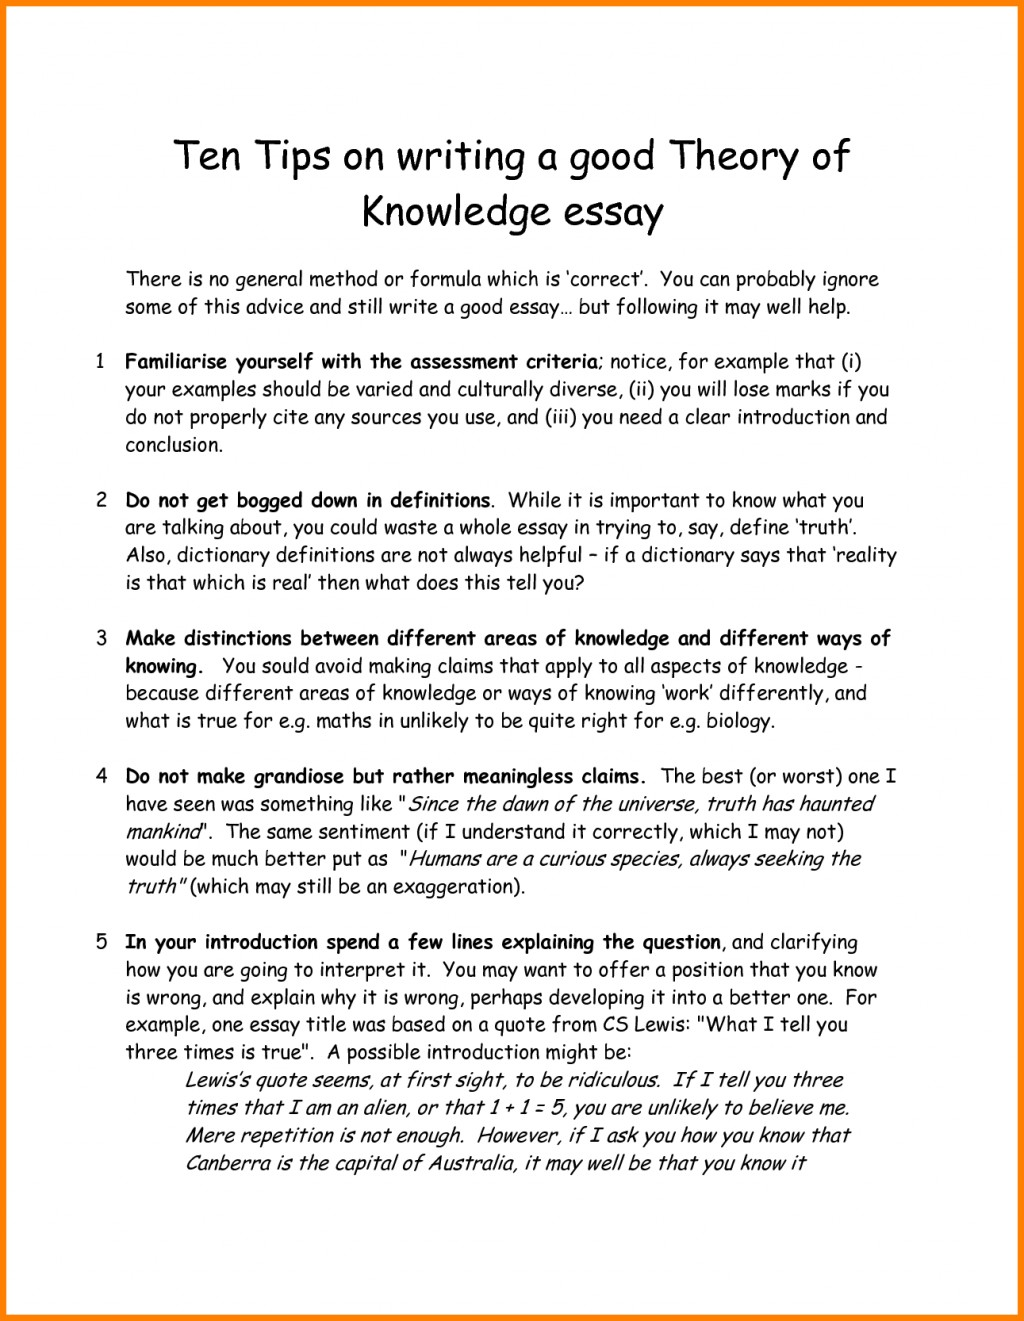 007 How To Start An Essay Examples Good Ways English The Paragraph Observation Off About Yourself Ledger Pa Informative Writing Analysis Conclusion Academic Top Introduction Large